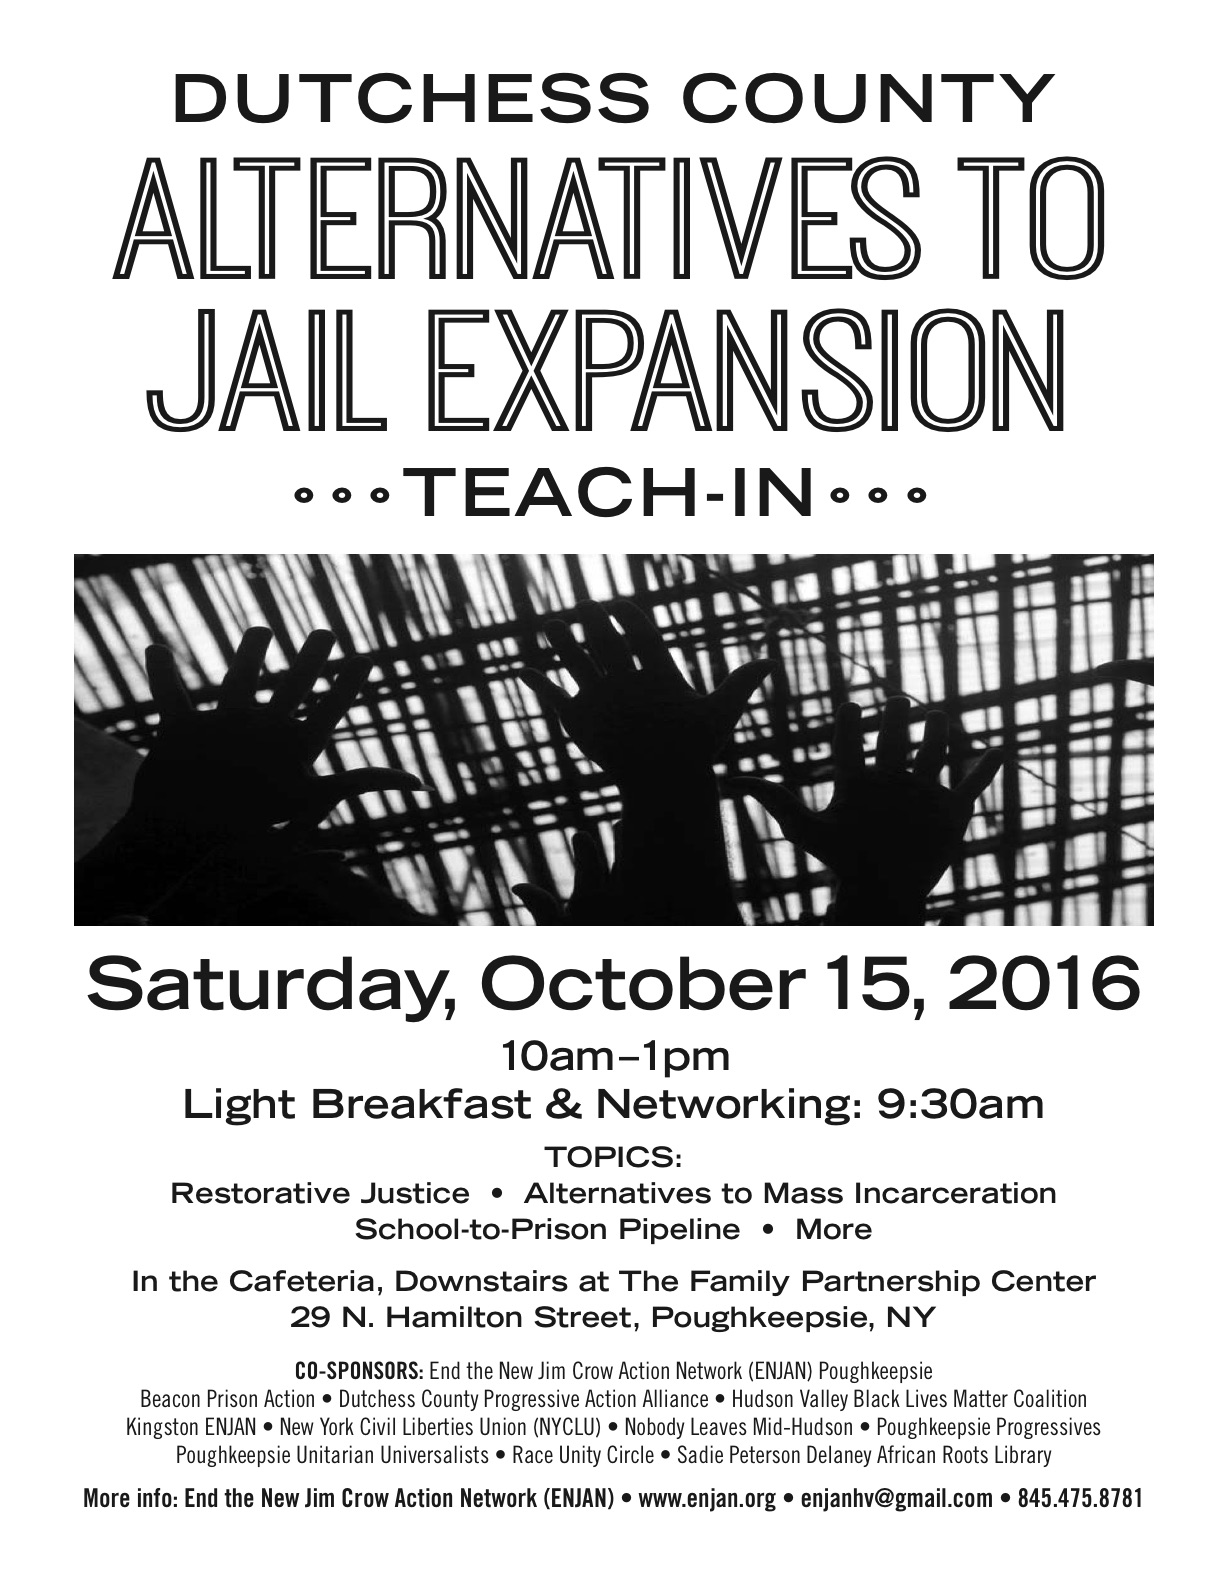 End the New Jim Crow Action Network!: DUTCHESS COUNTY JAIL